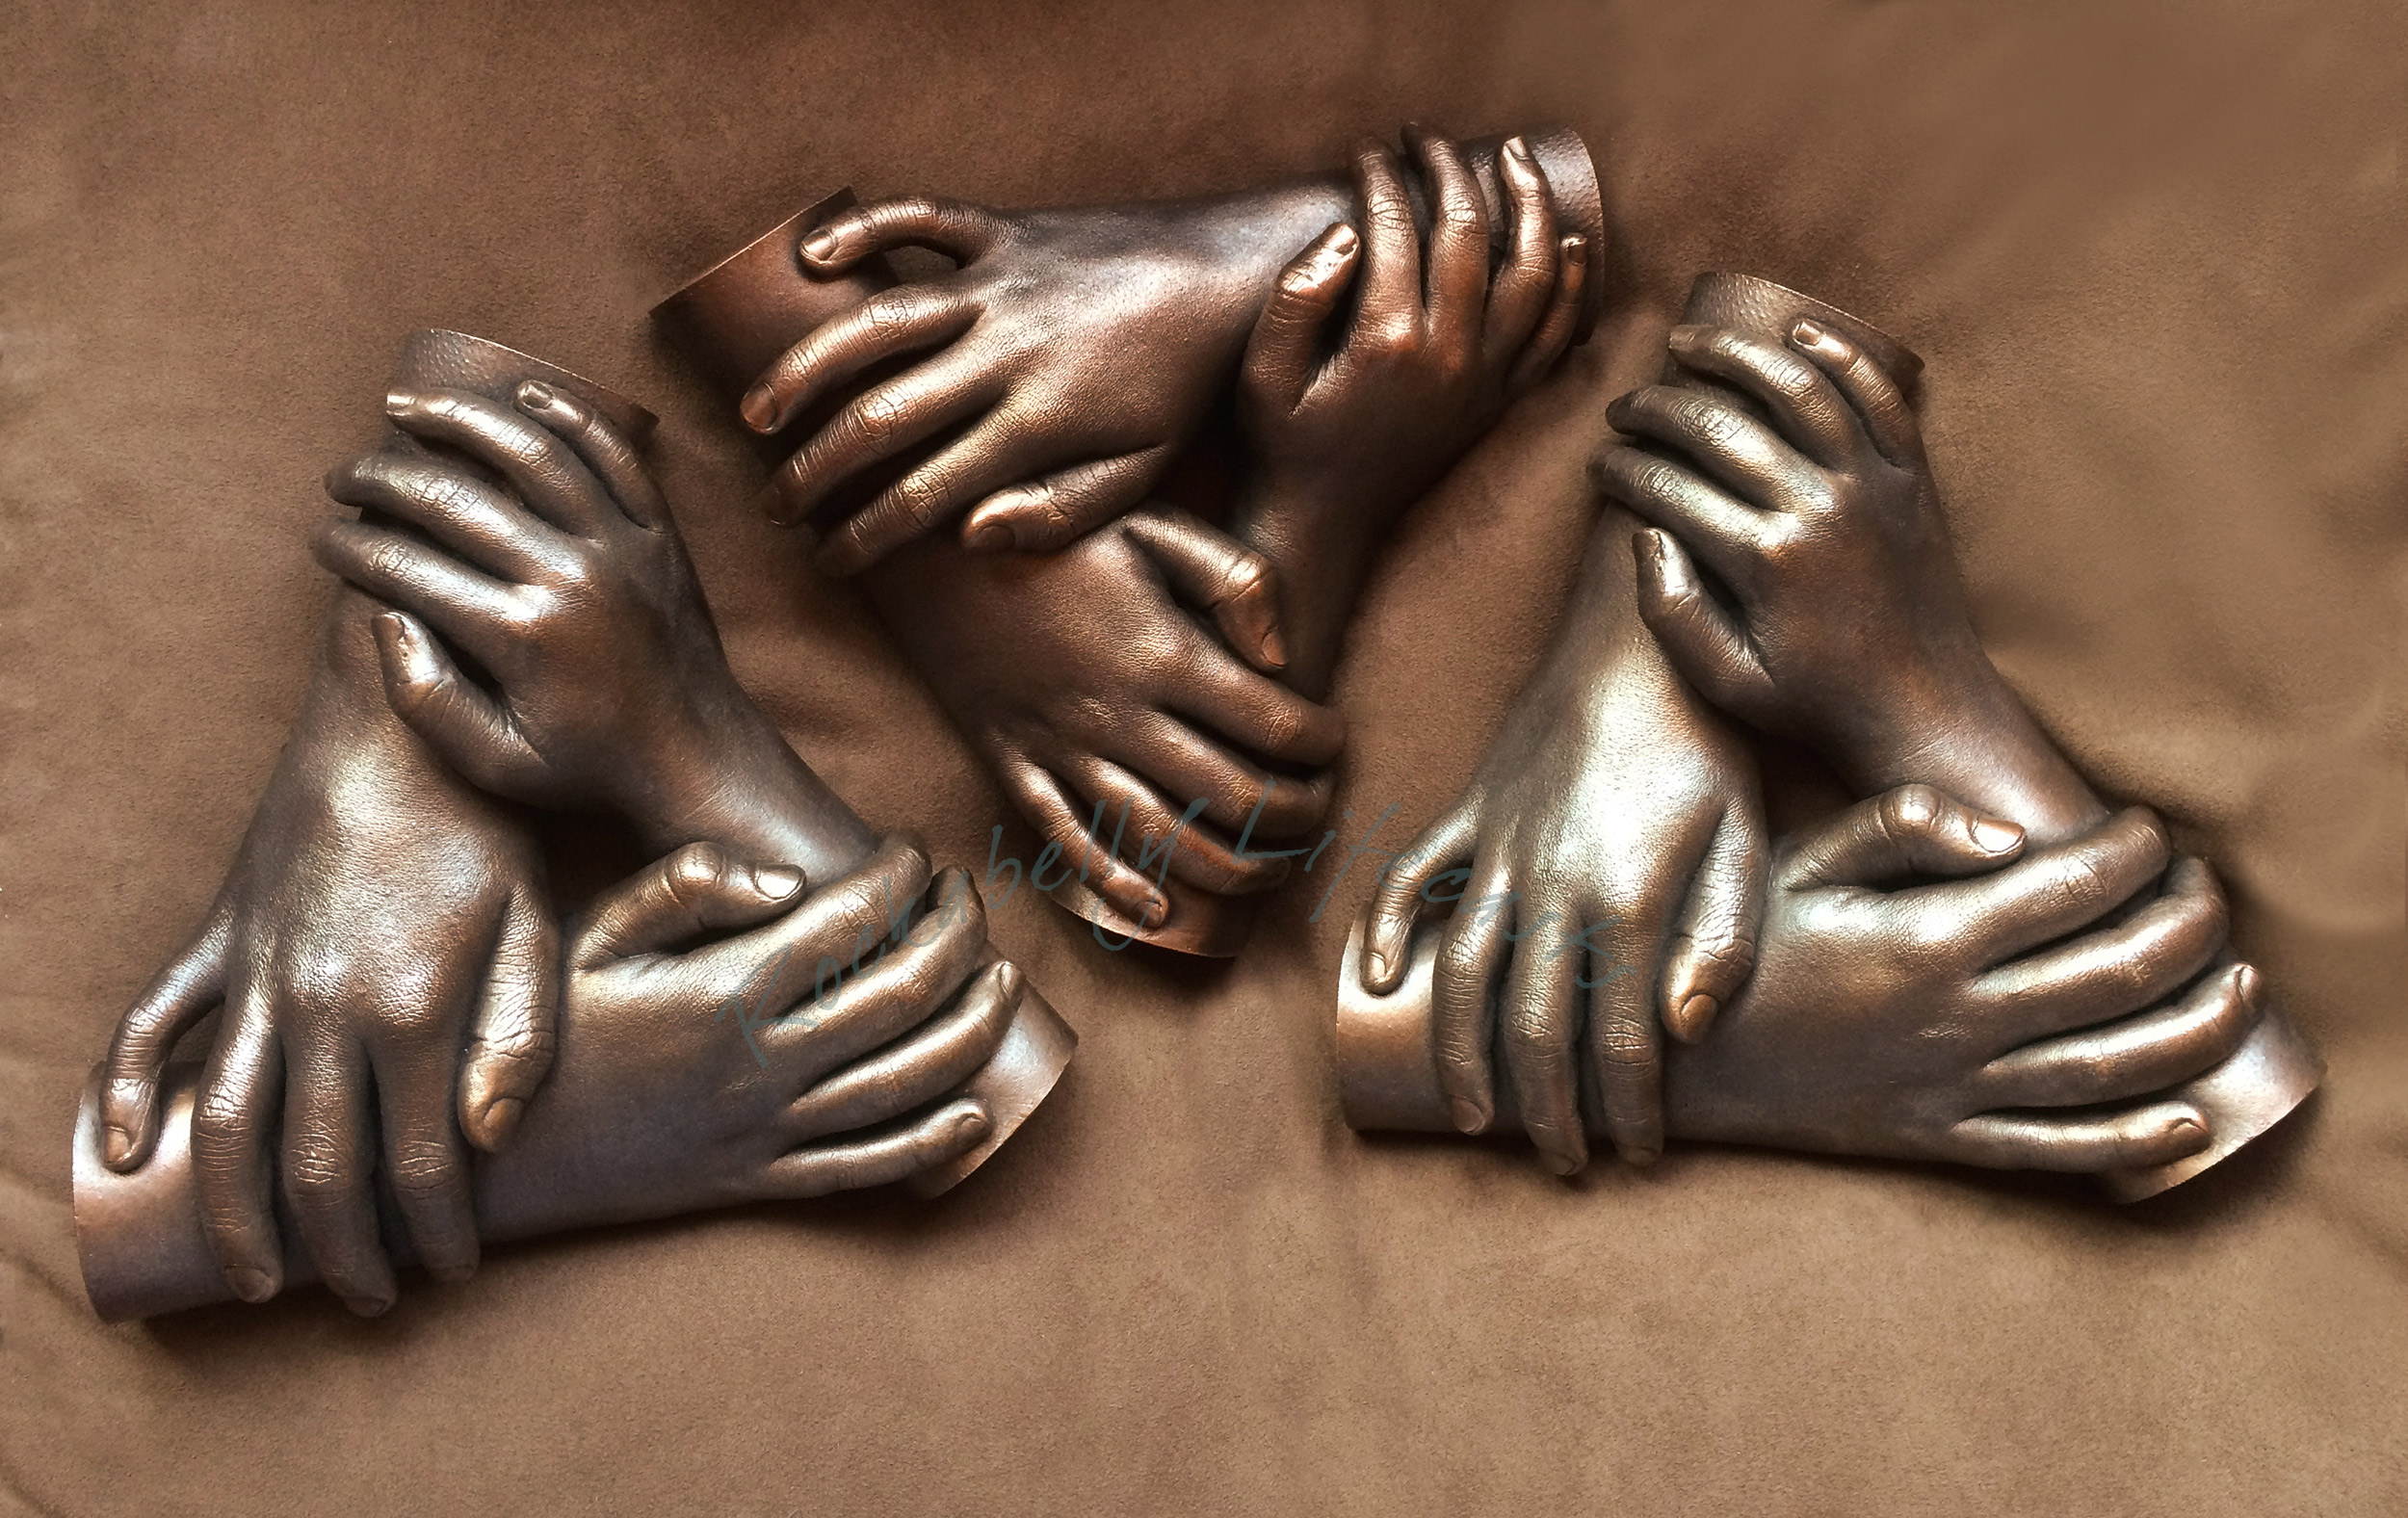 Family group hand casts in cold cast copper and faux metal.